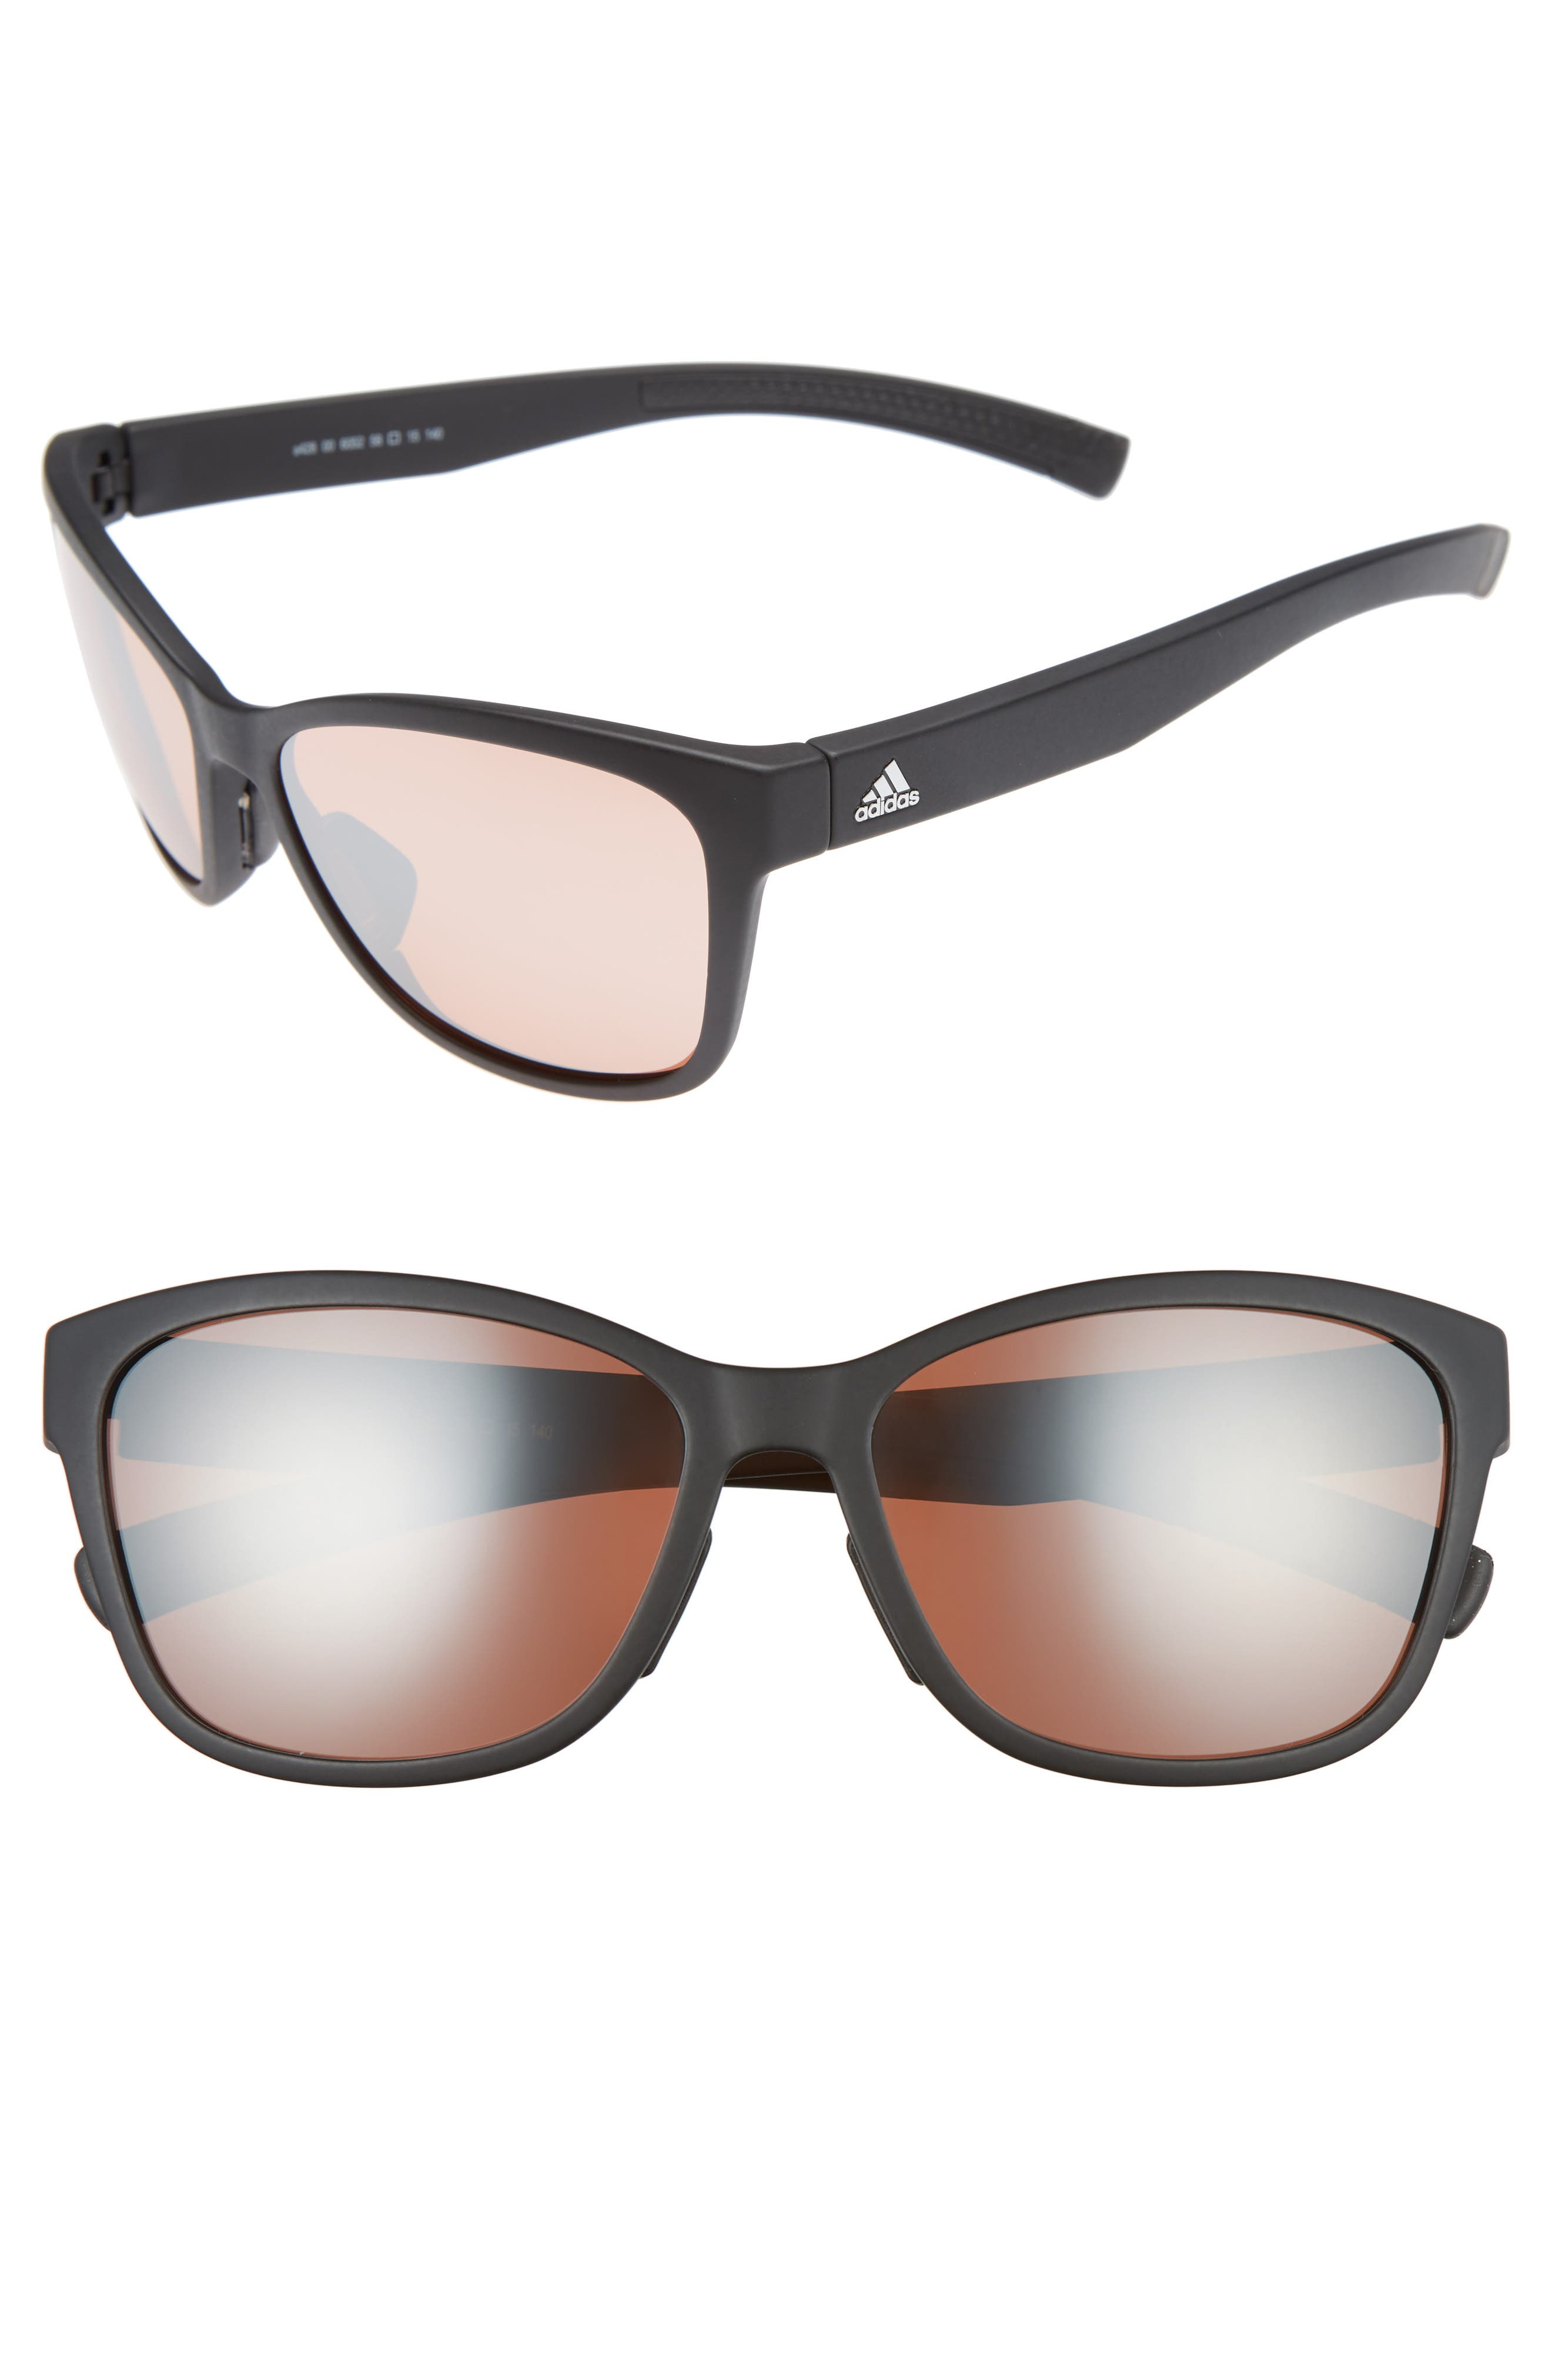 Excalate 58mm Mirrored Sunglasses,                         Main,                         color, BLACK MATTE/ TAUPE